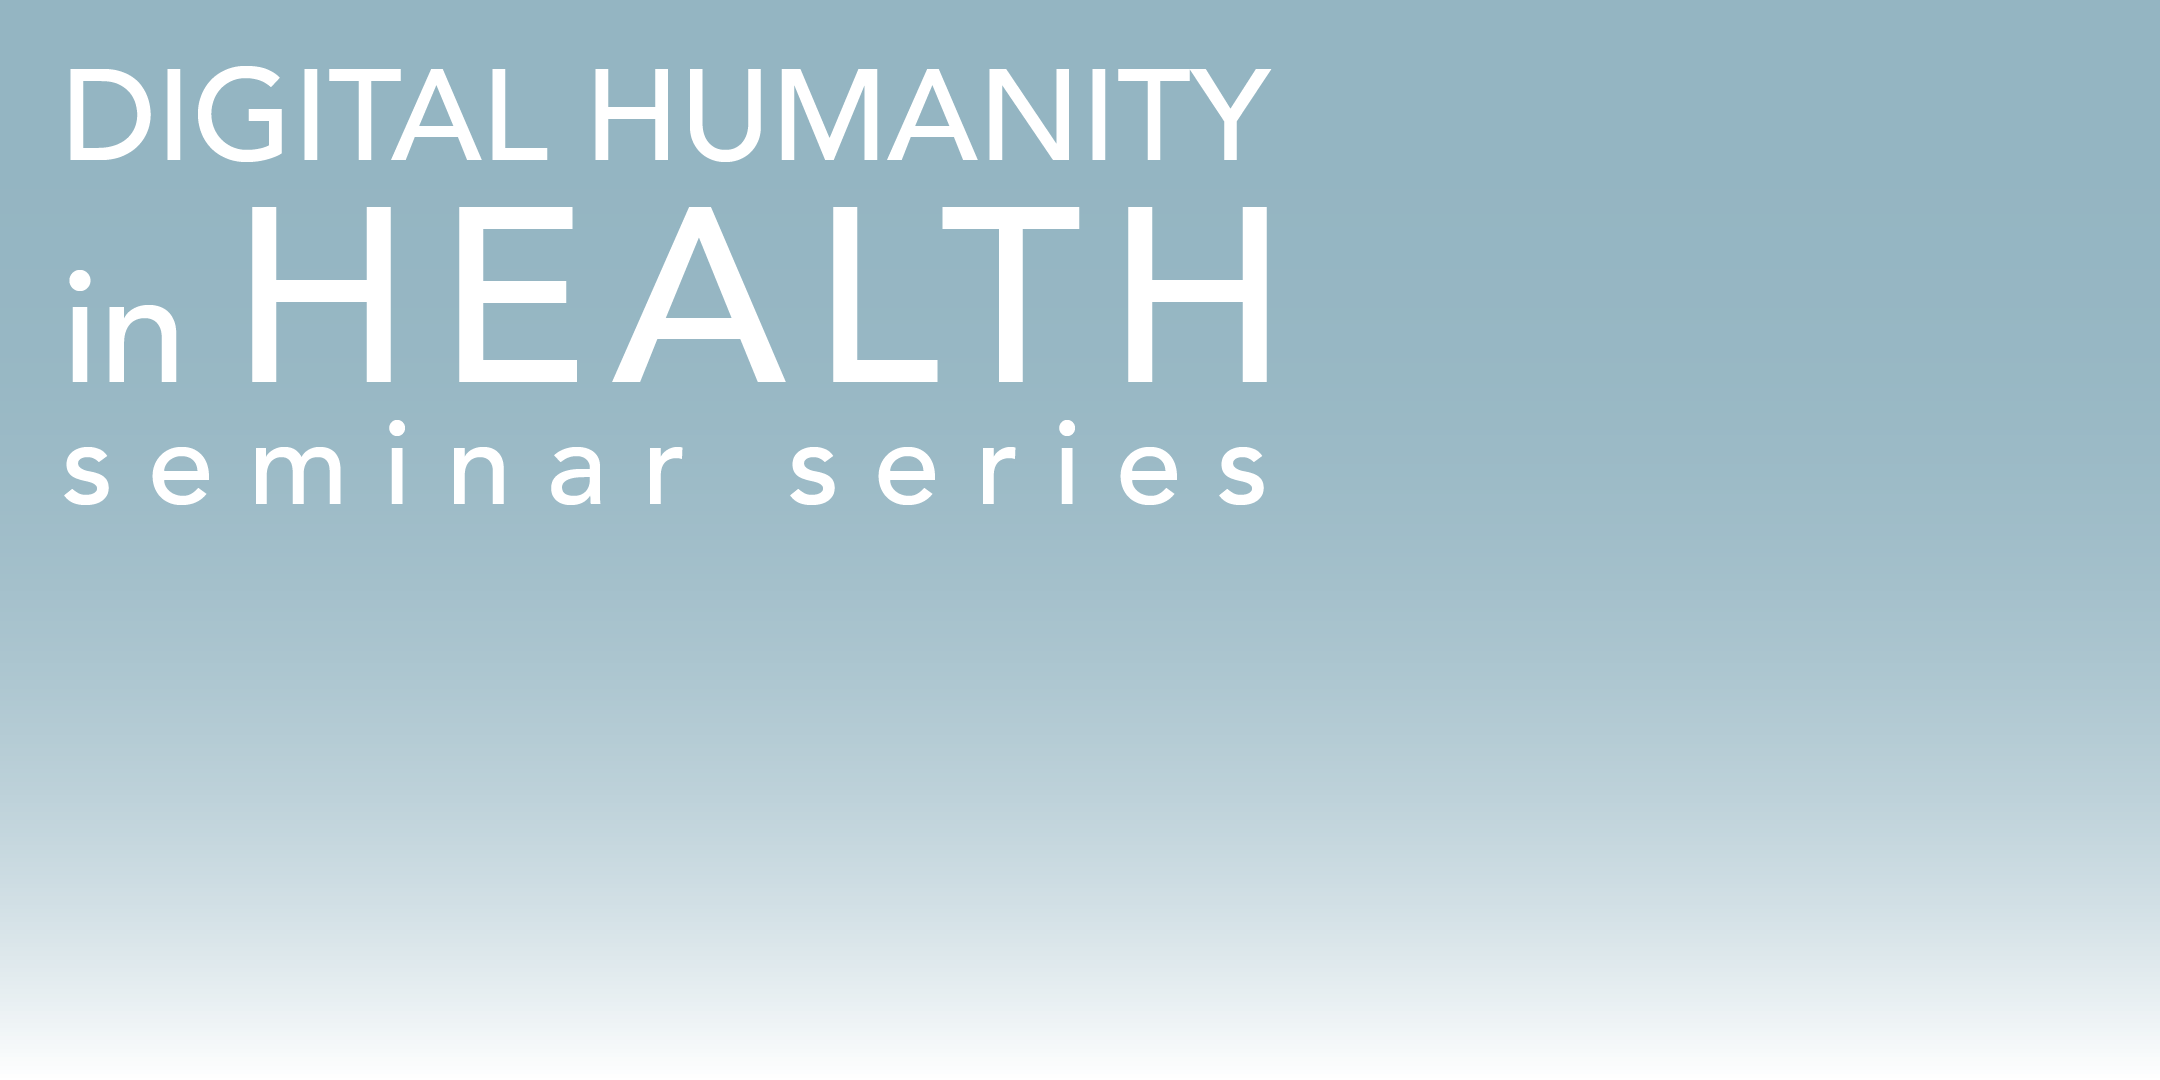 Digital Humanity in Health and Care seminar s